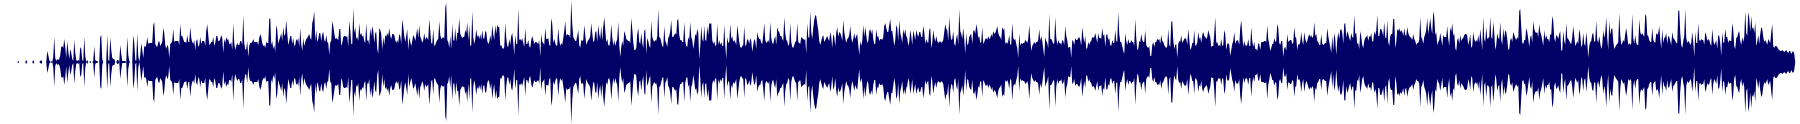 waveform of track #68832